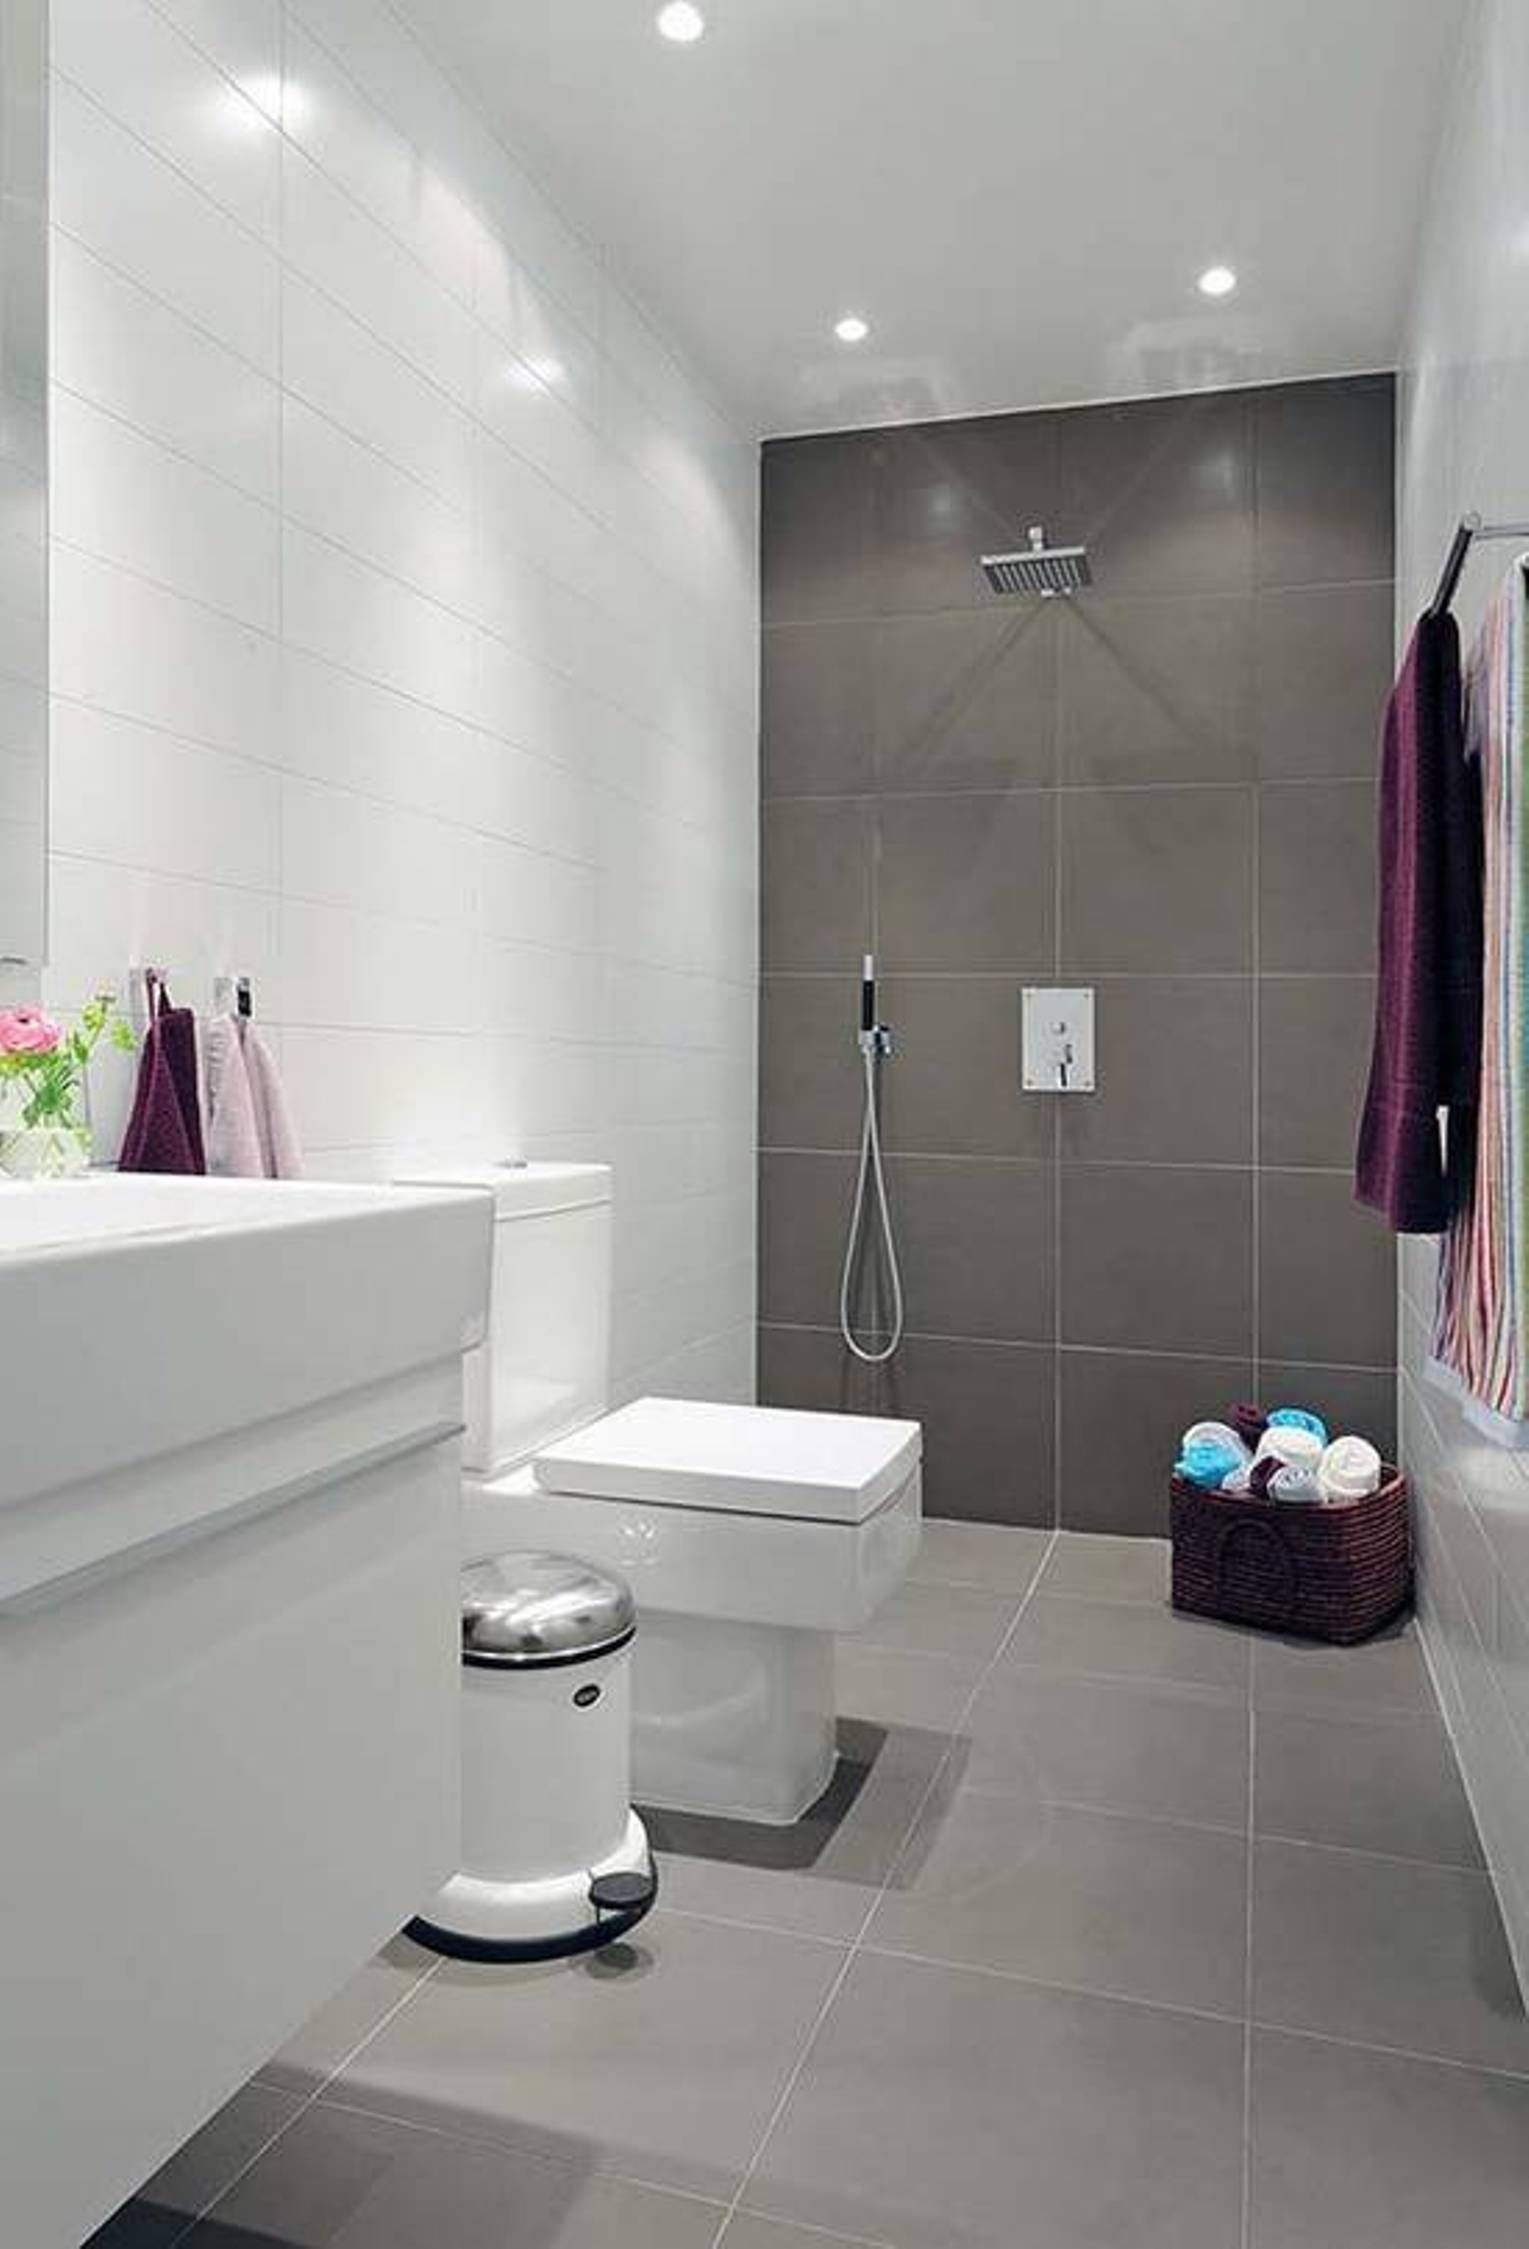 Awesome 10 Bathroom Color Trends 2016 Some Of The Cutest And Exciting Too For You 10 Bathro In 2020 Bathroom Design Small Small Bathroom Tiles Small Bathroom